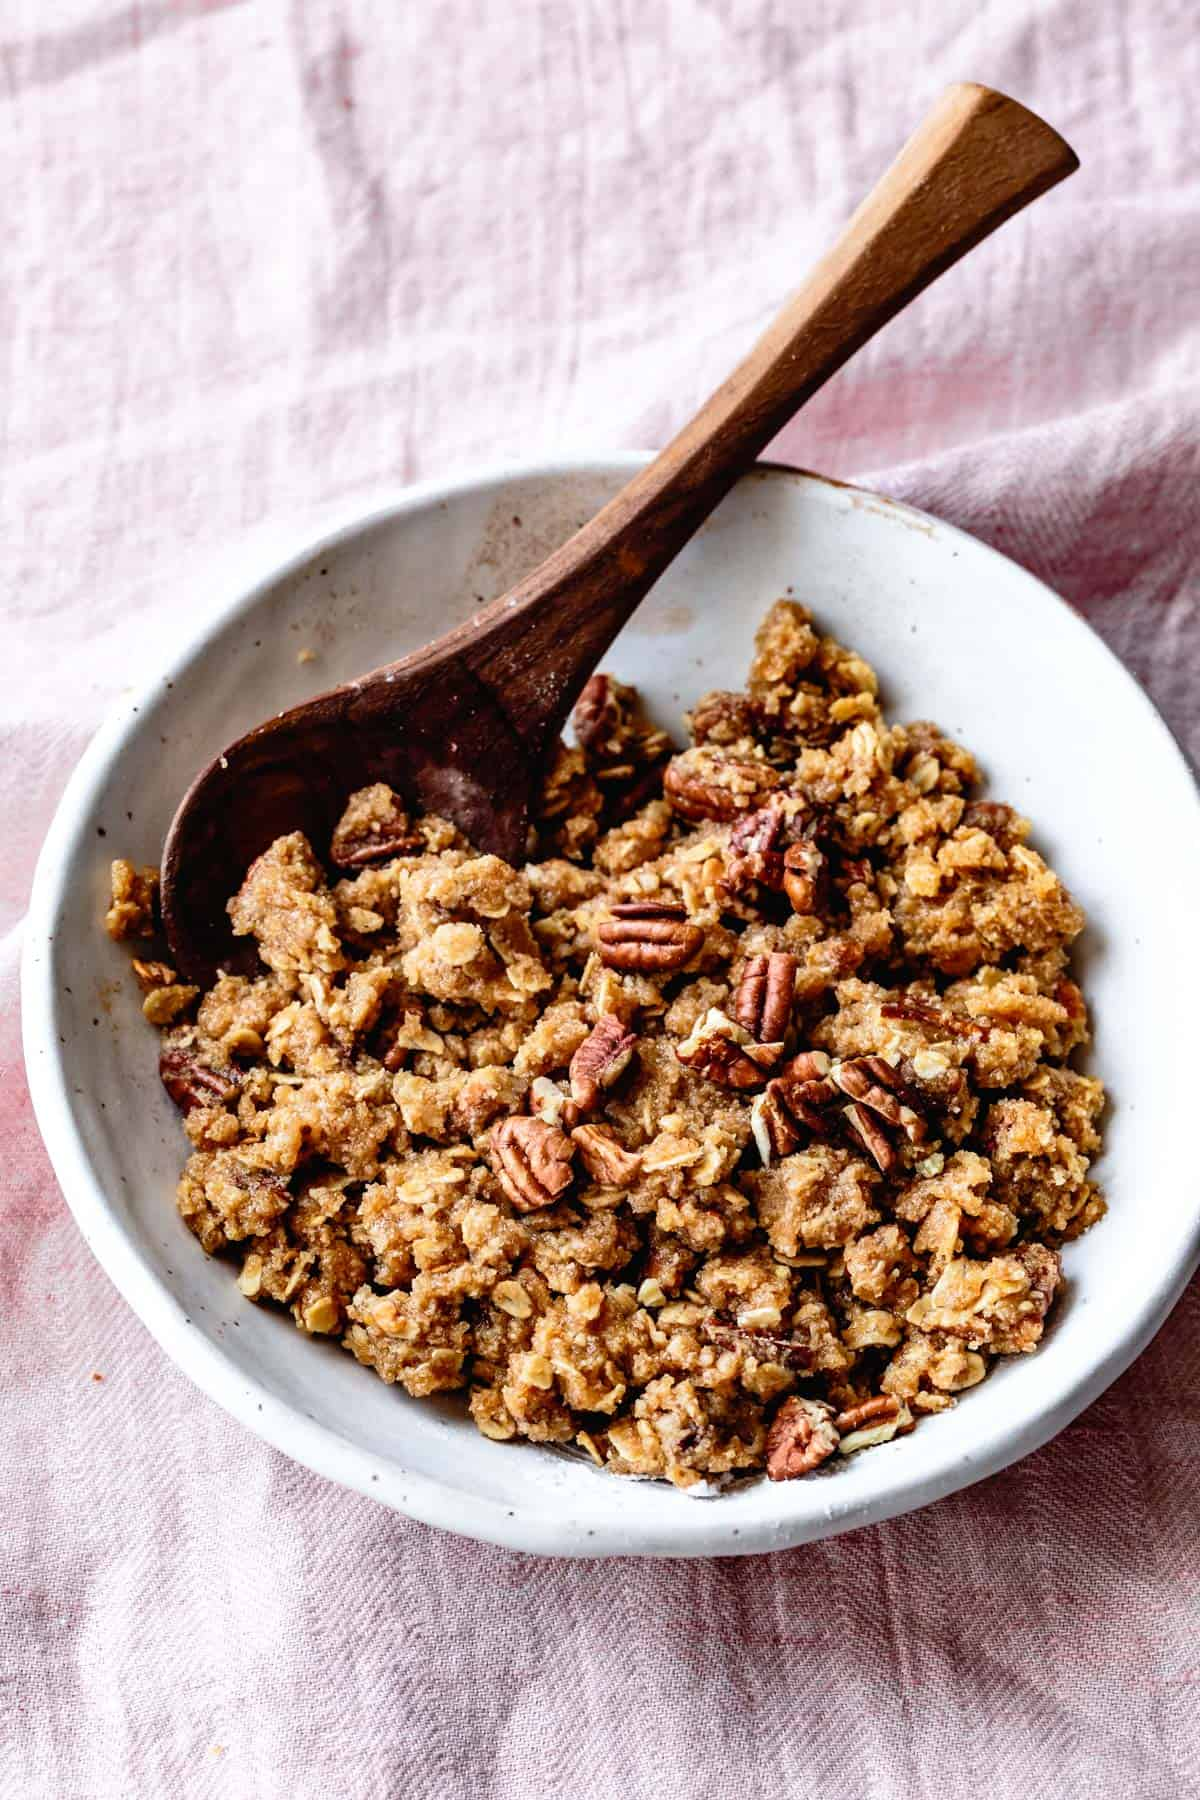 Pecan almond streusel topping for Gluten-Free Coffee Cake recipe